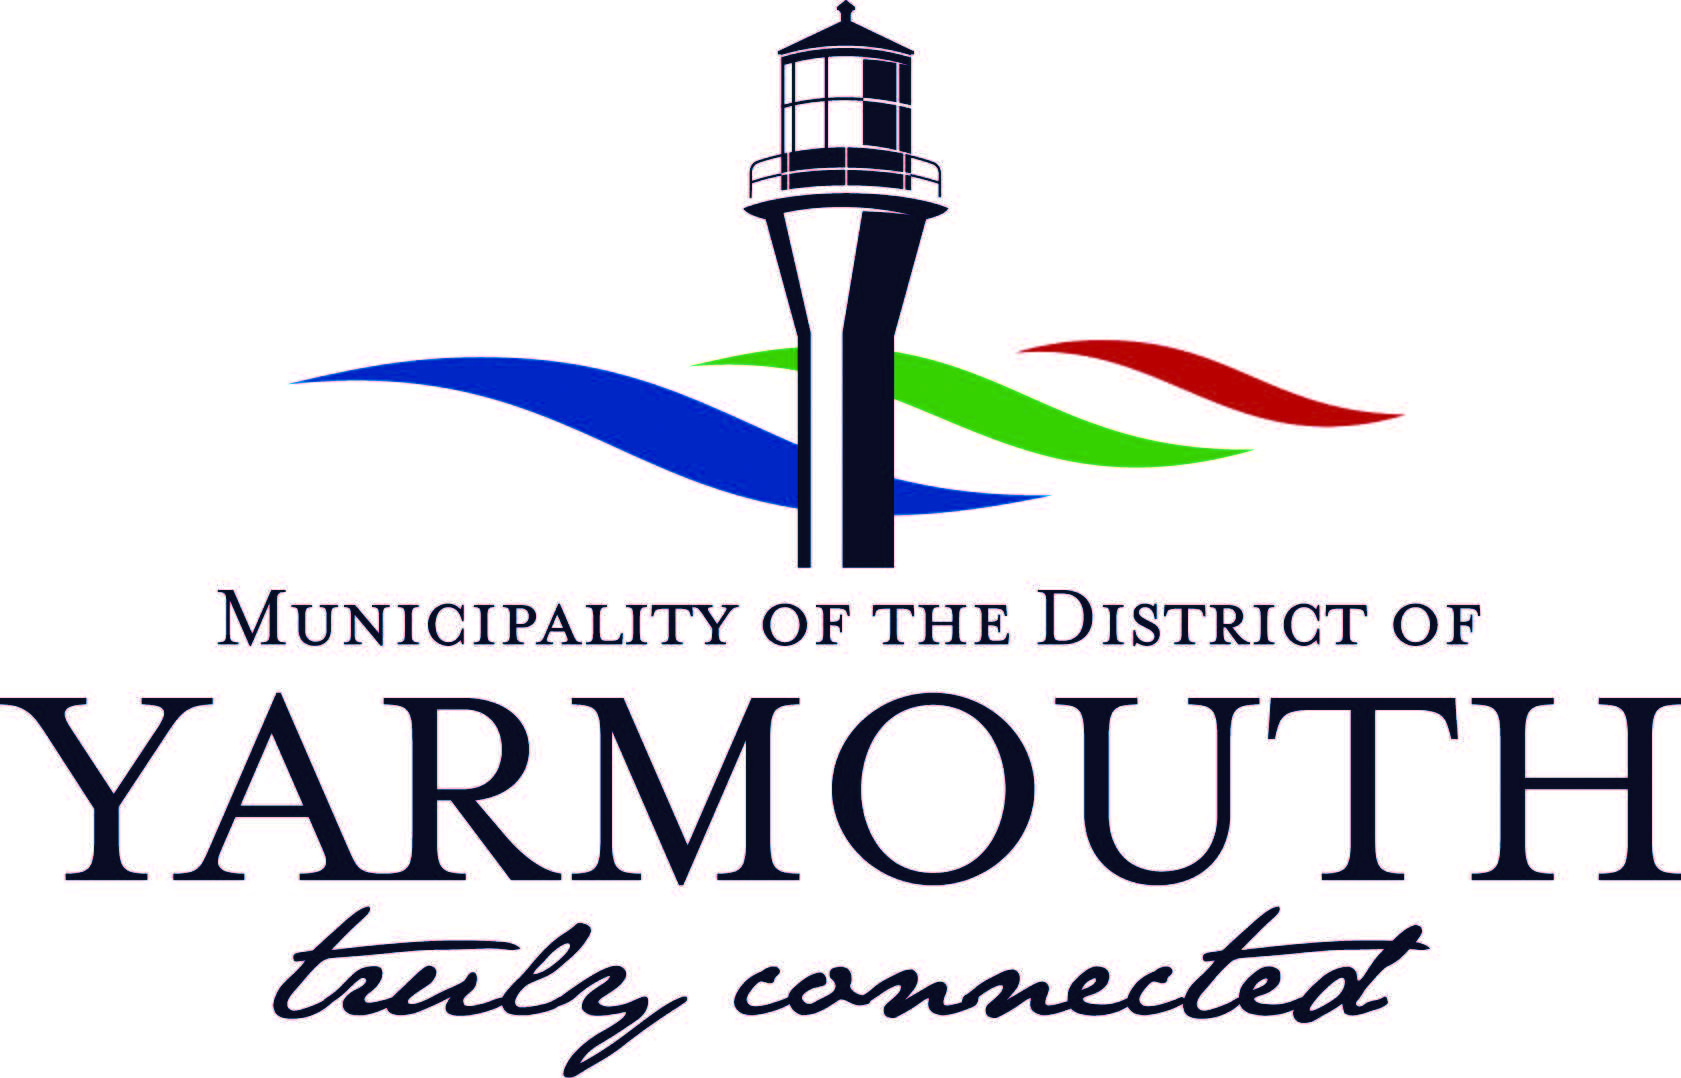 Town of Yarmouth, Crest